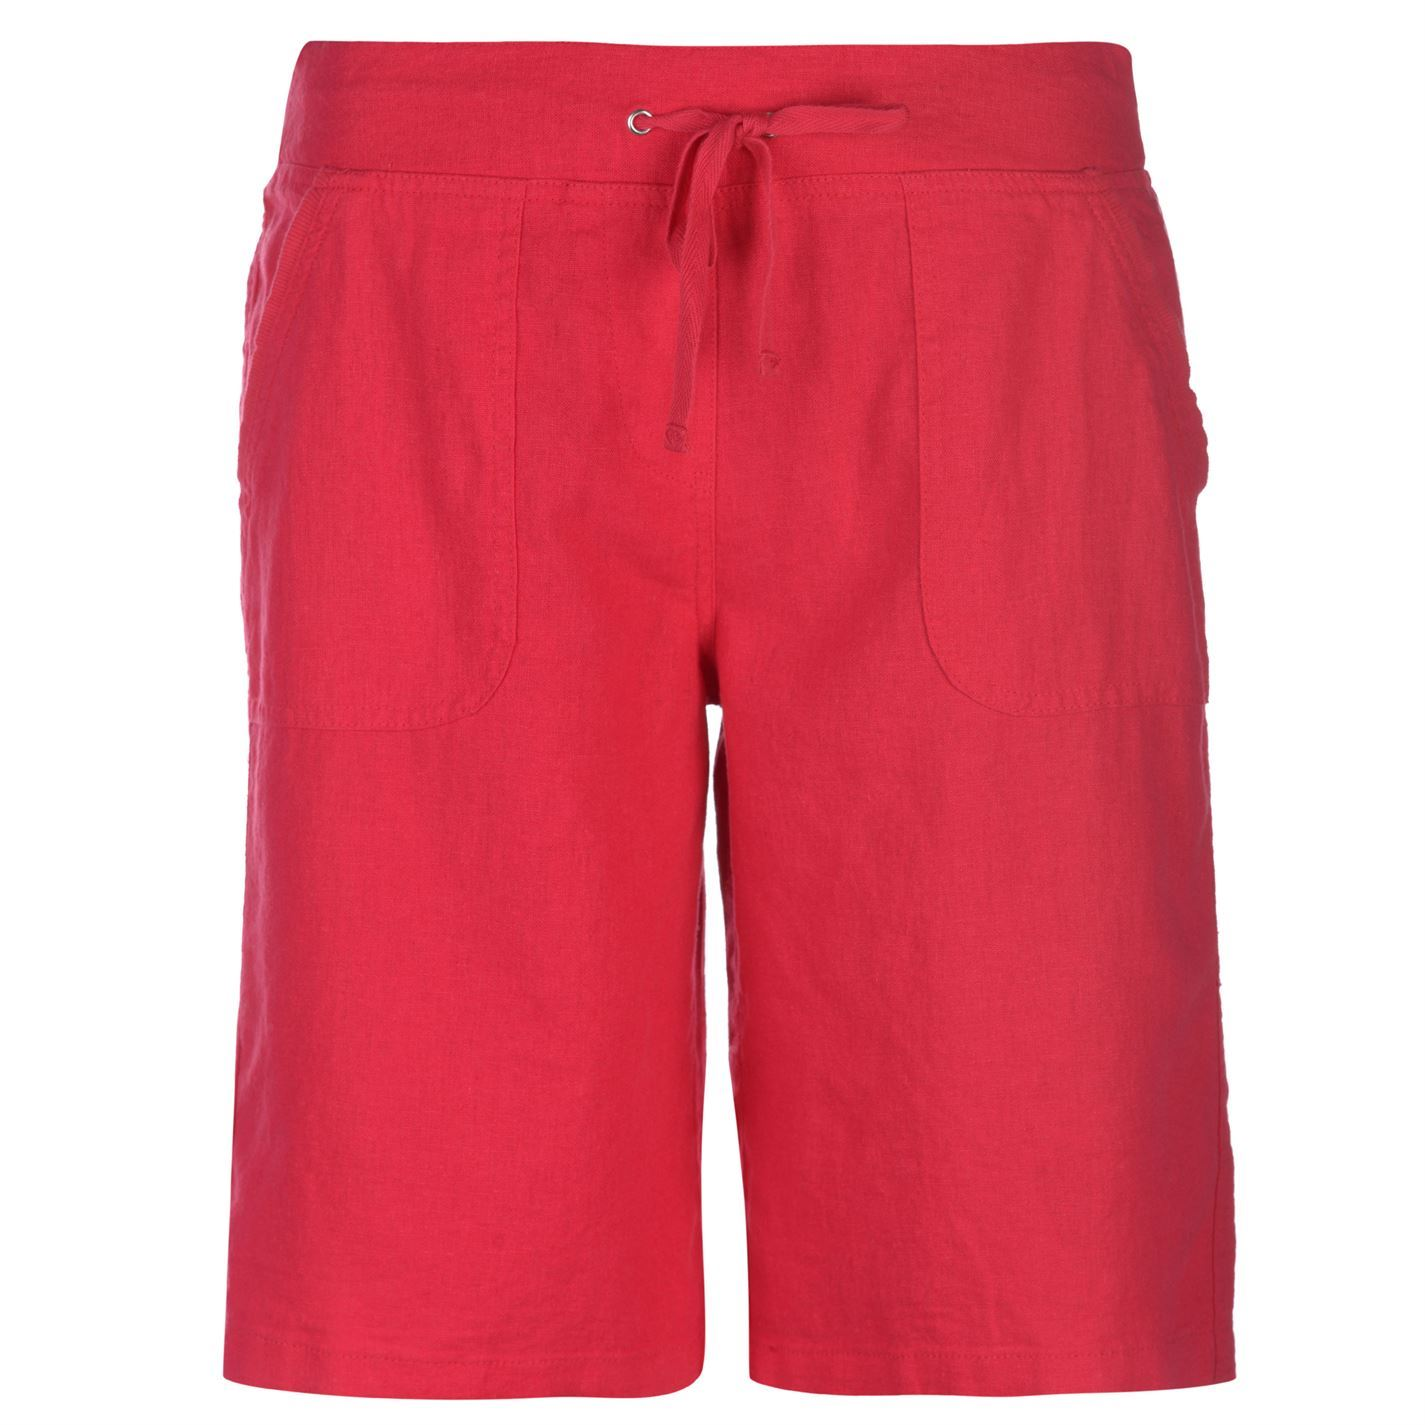 TROUSERS - Bermuda shorts Full Circle uBDfba9Yh